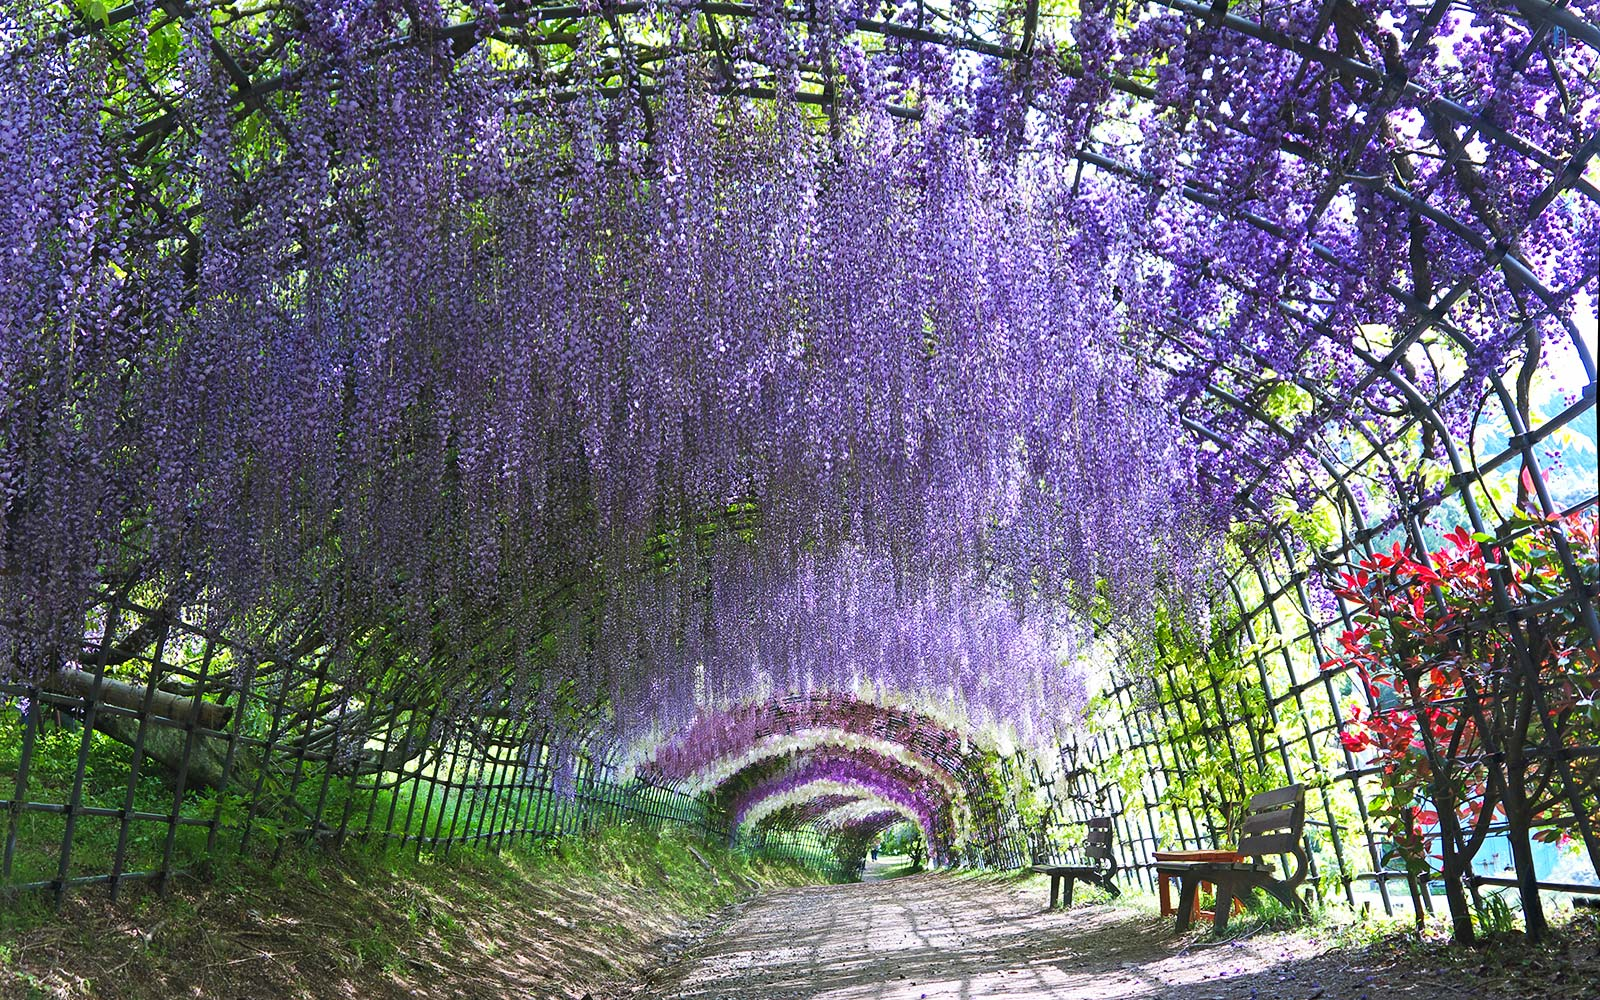 Take a walk through japan s magical wisteria tunnels Wisteria flower tunnel path in japan